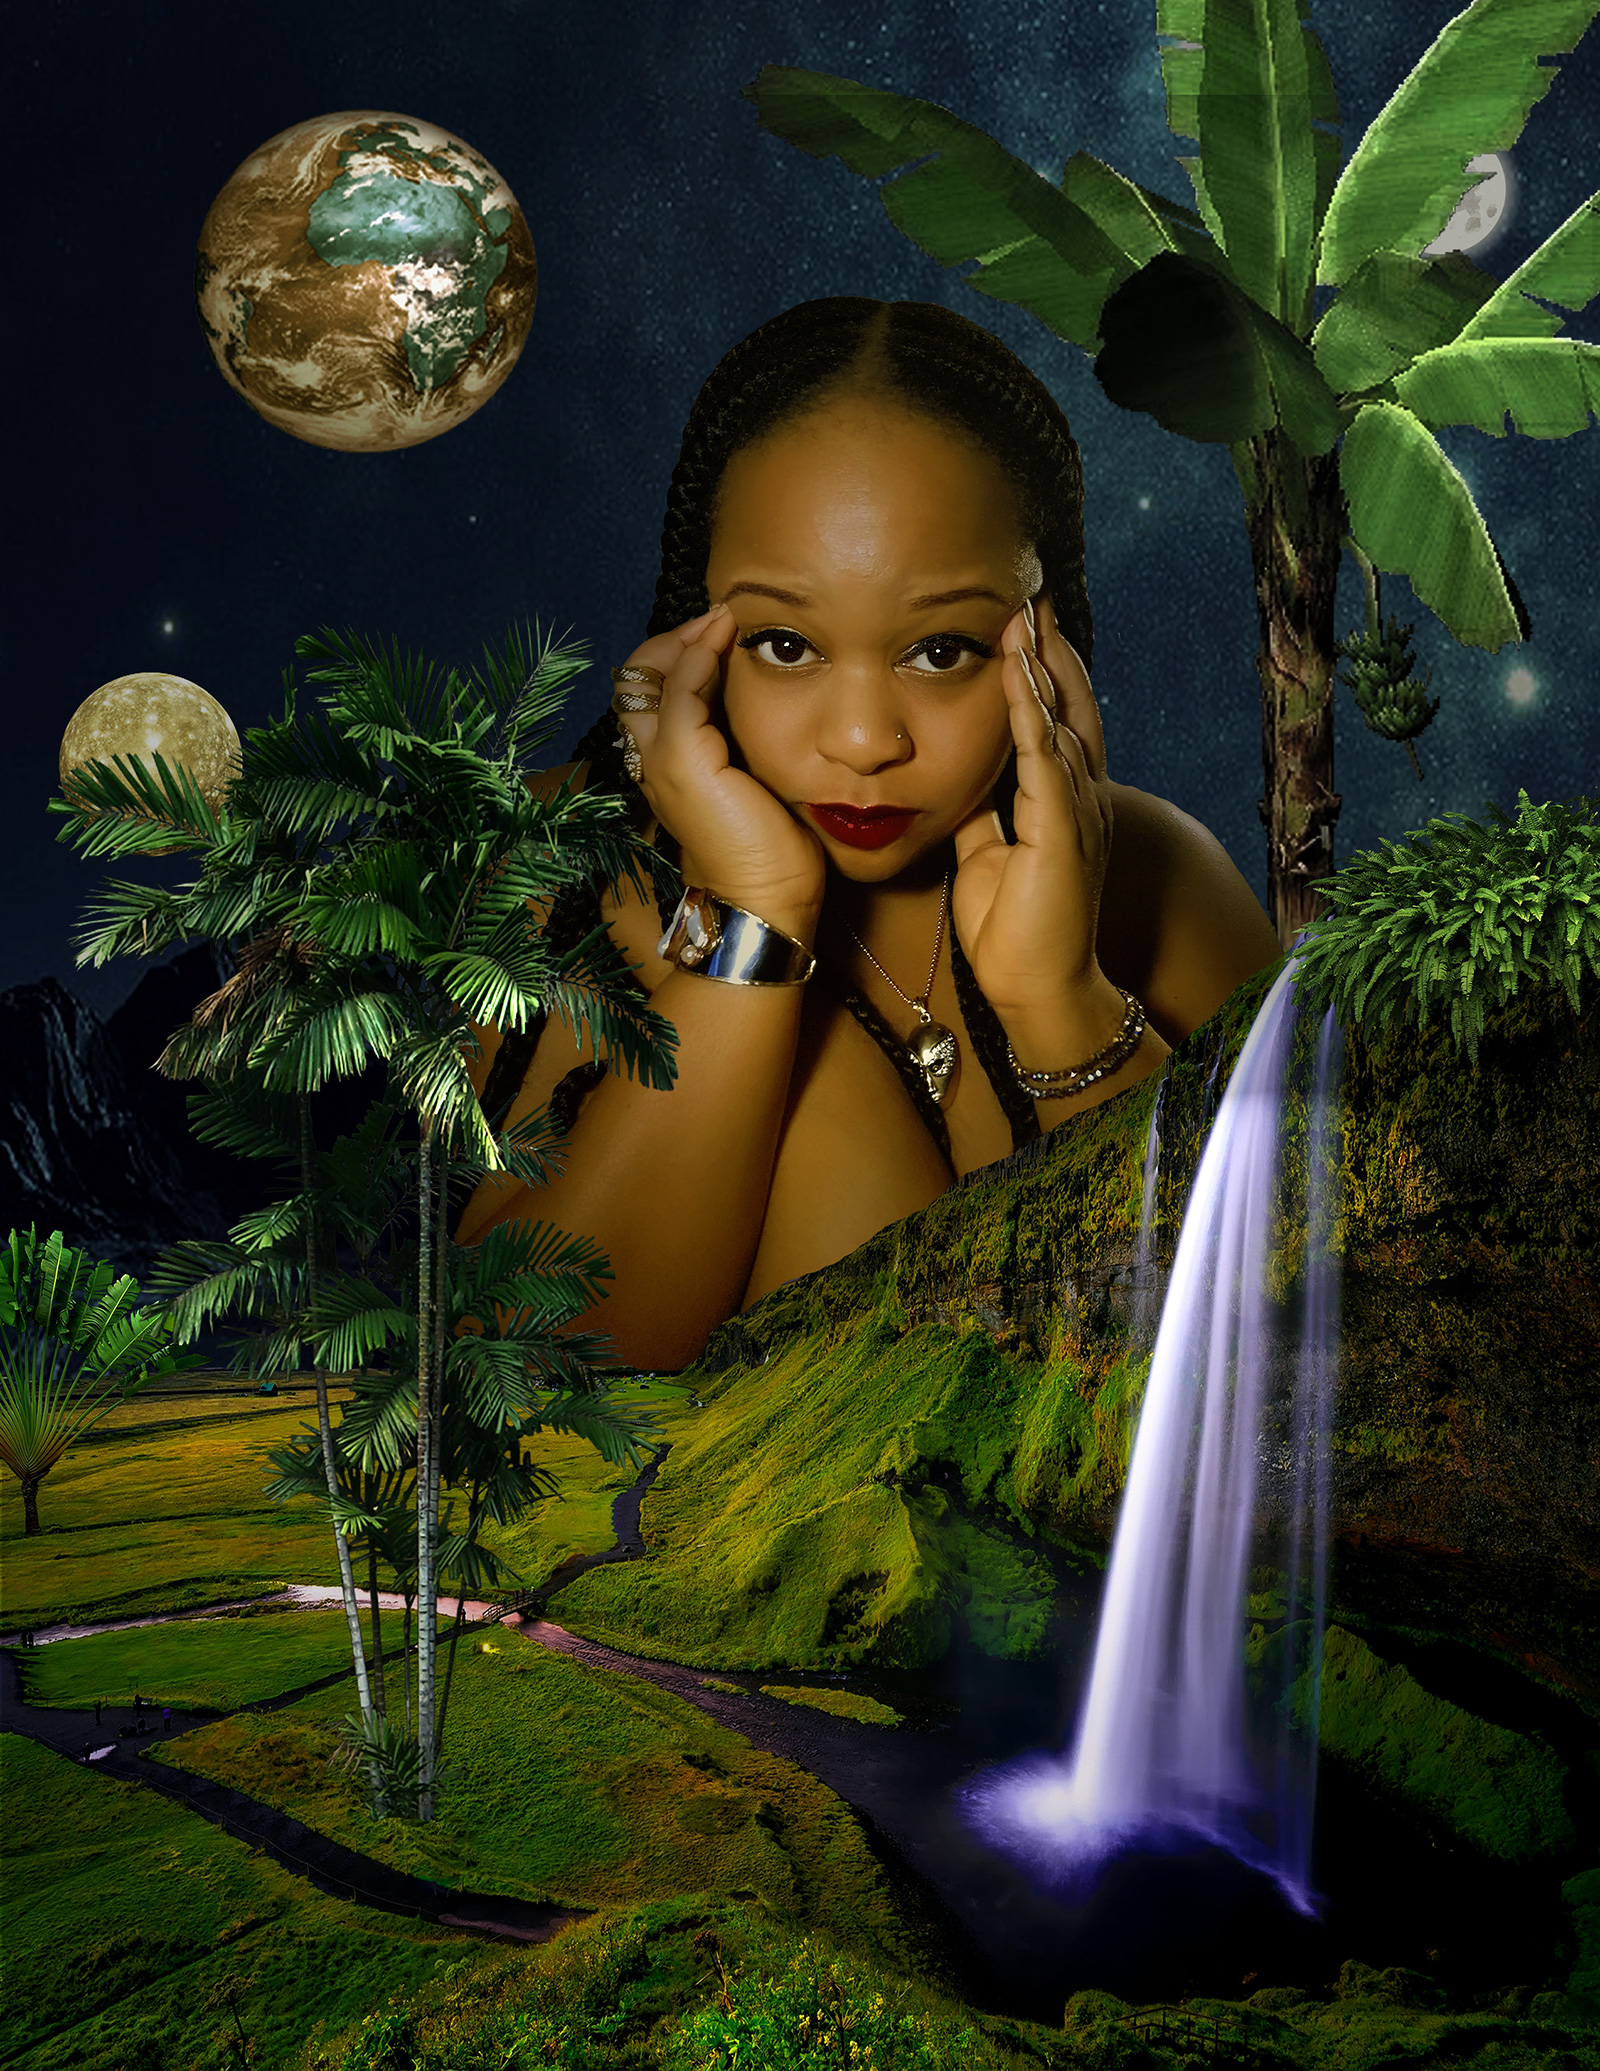 a self-portrait of Andrea Cauthen, a Black woman with slicked hair, wearing gold jewelry, raising her hands by her temples. She is collaged in a tropical environment, surrounded by palm trees, a waterfall, and rising moon, with earth in the background